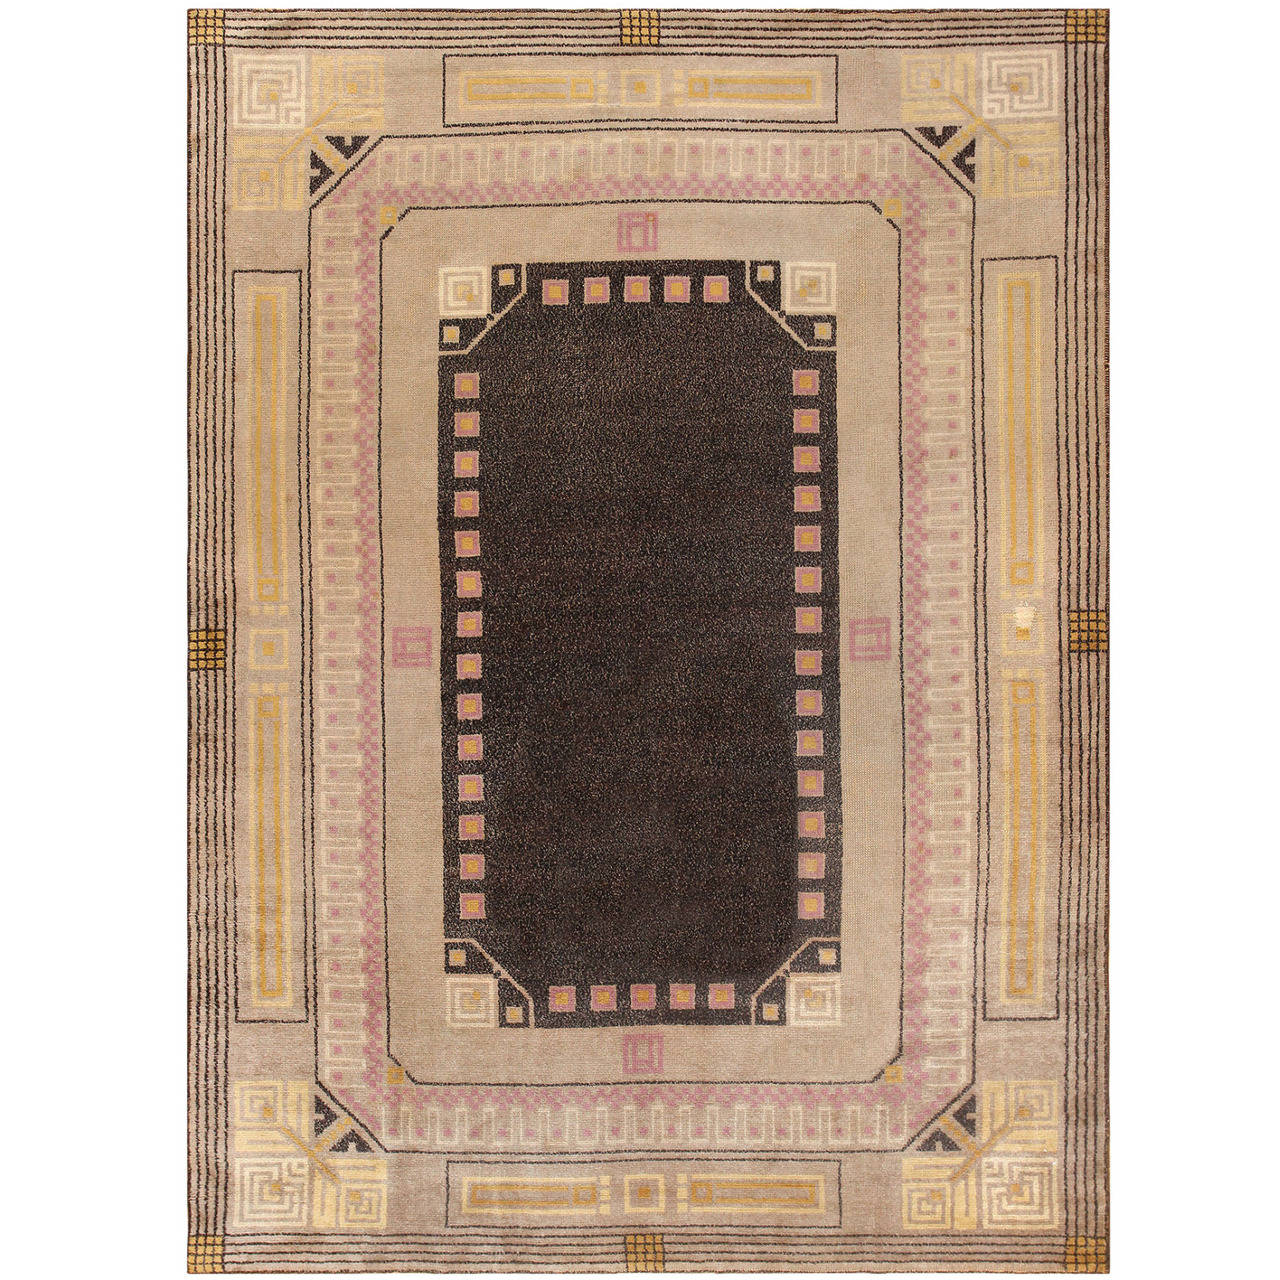 art deco carpet by josef hoffmann at 1stdibs